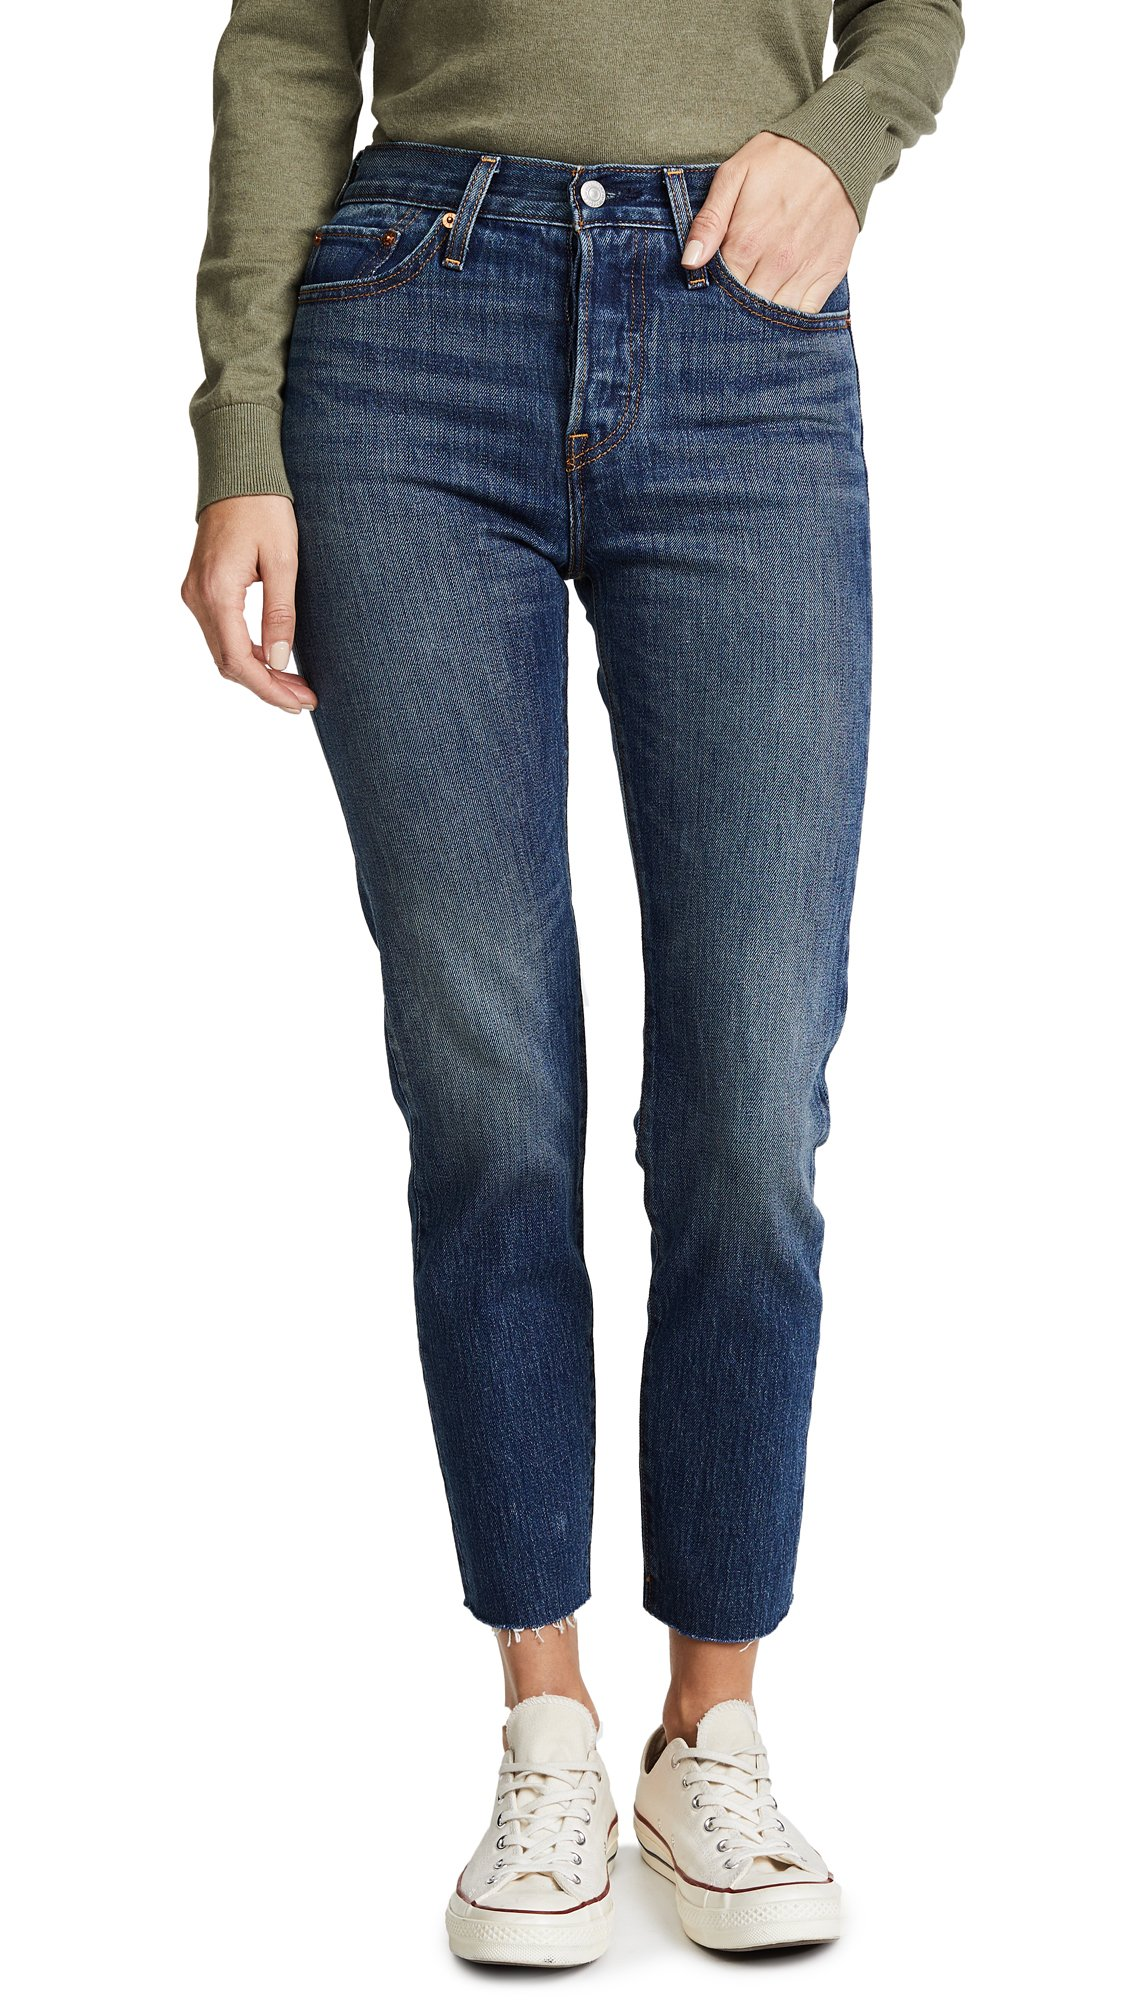 Levi's Women's Wedgie Icon Jeans, Classic Tint, 27 (US 4) by Levi's (Image #1)